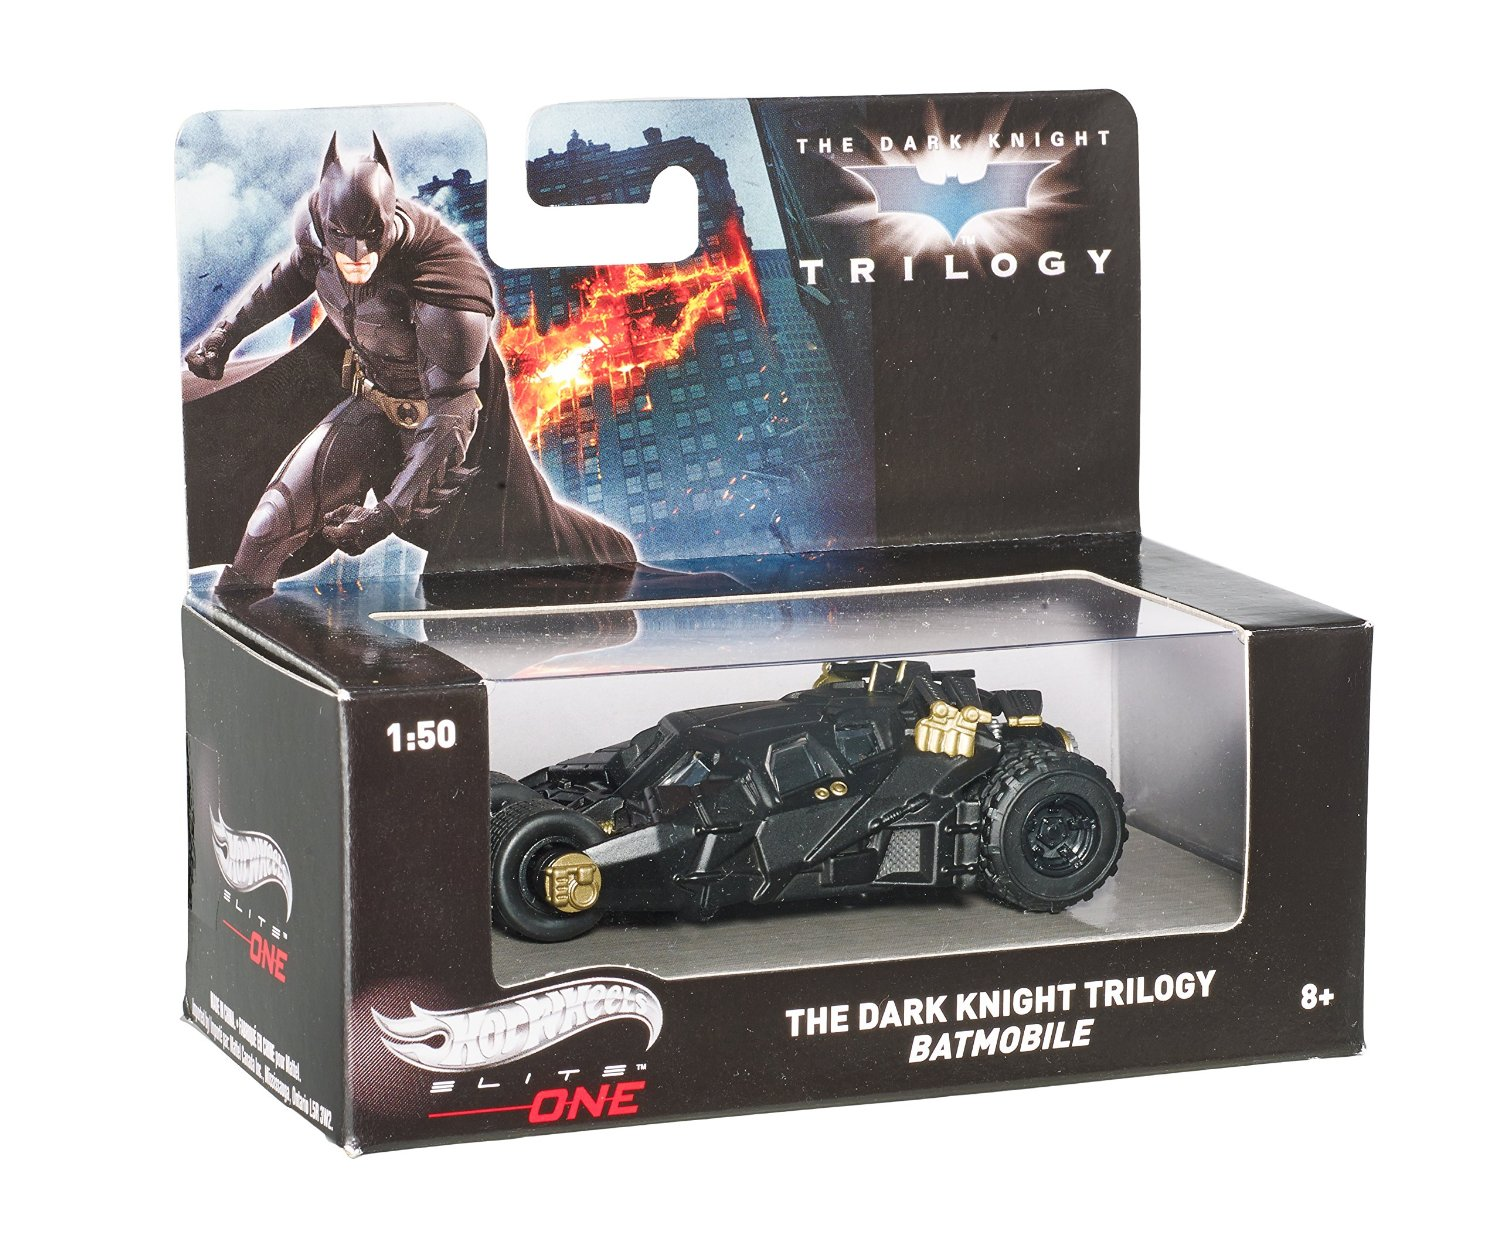 Hot Wheels Elite One The Dark Knight Trilogy Batmobile